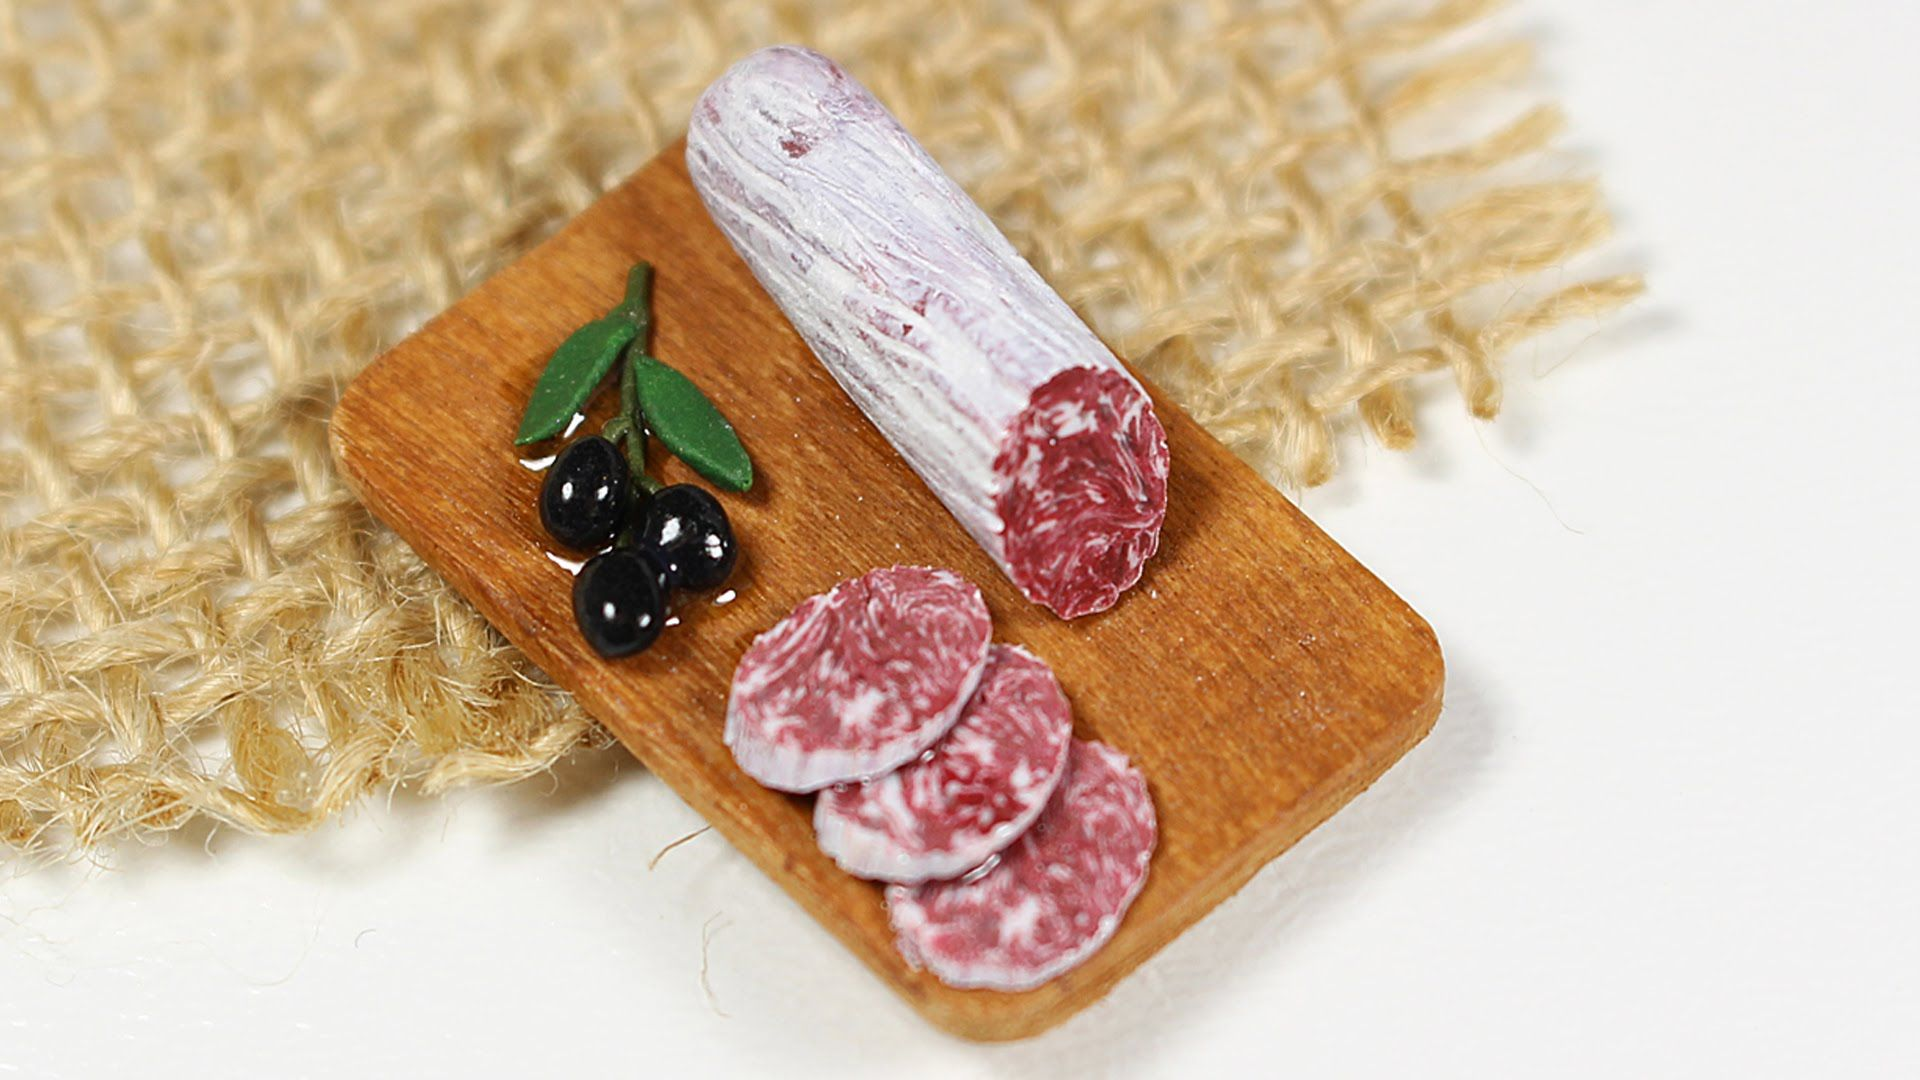 miniature salami on board TUTORIAL (polymer clay)